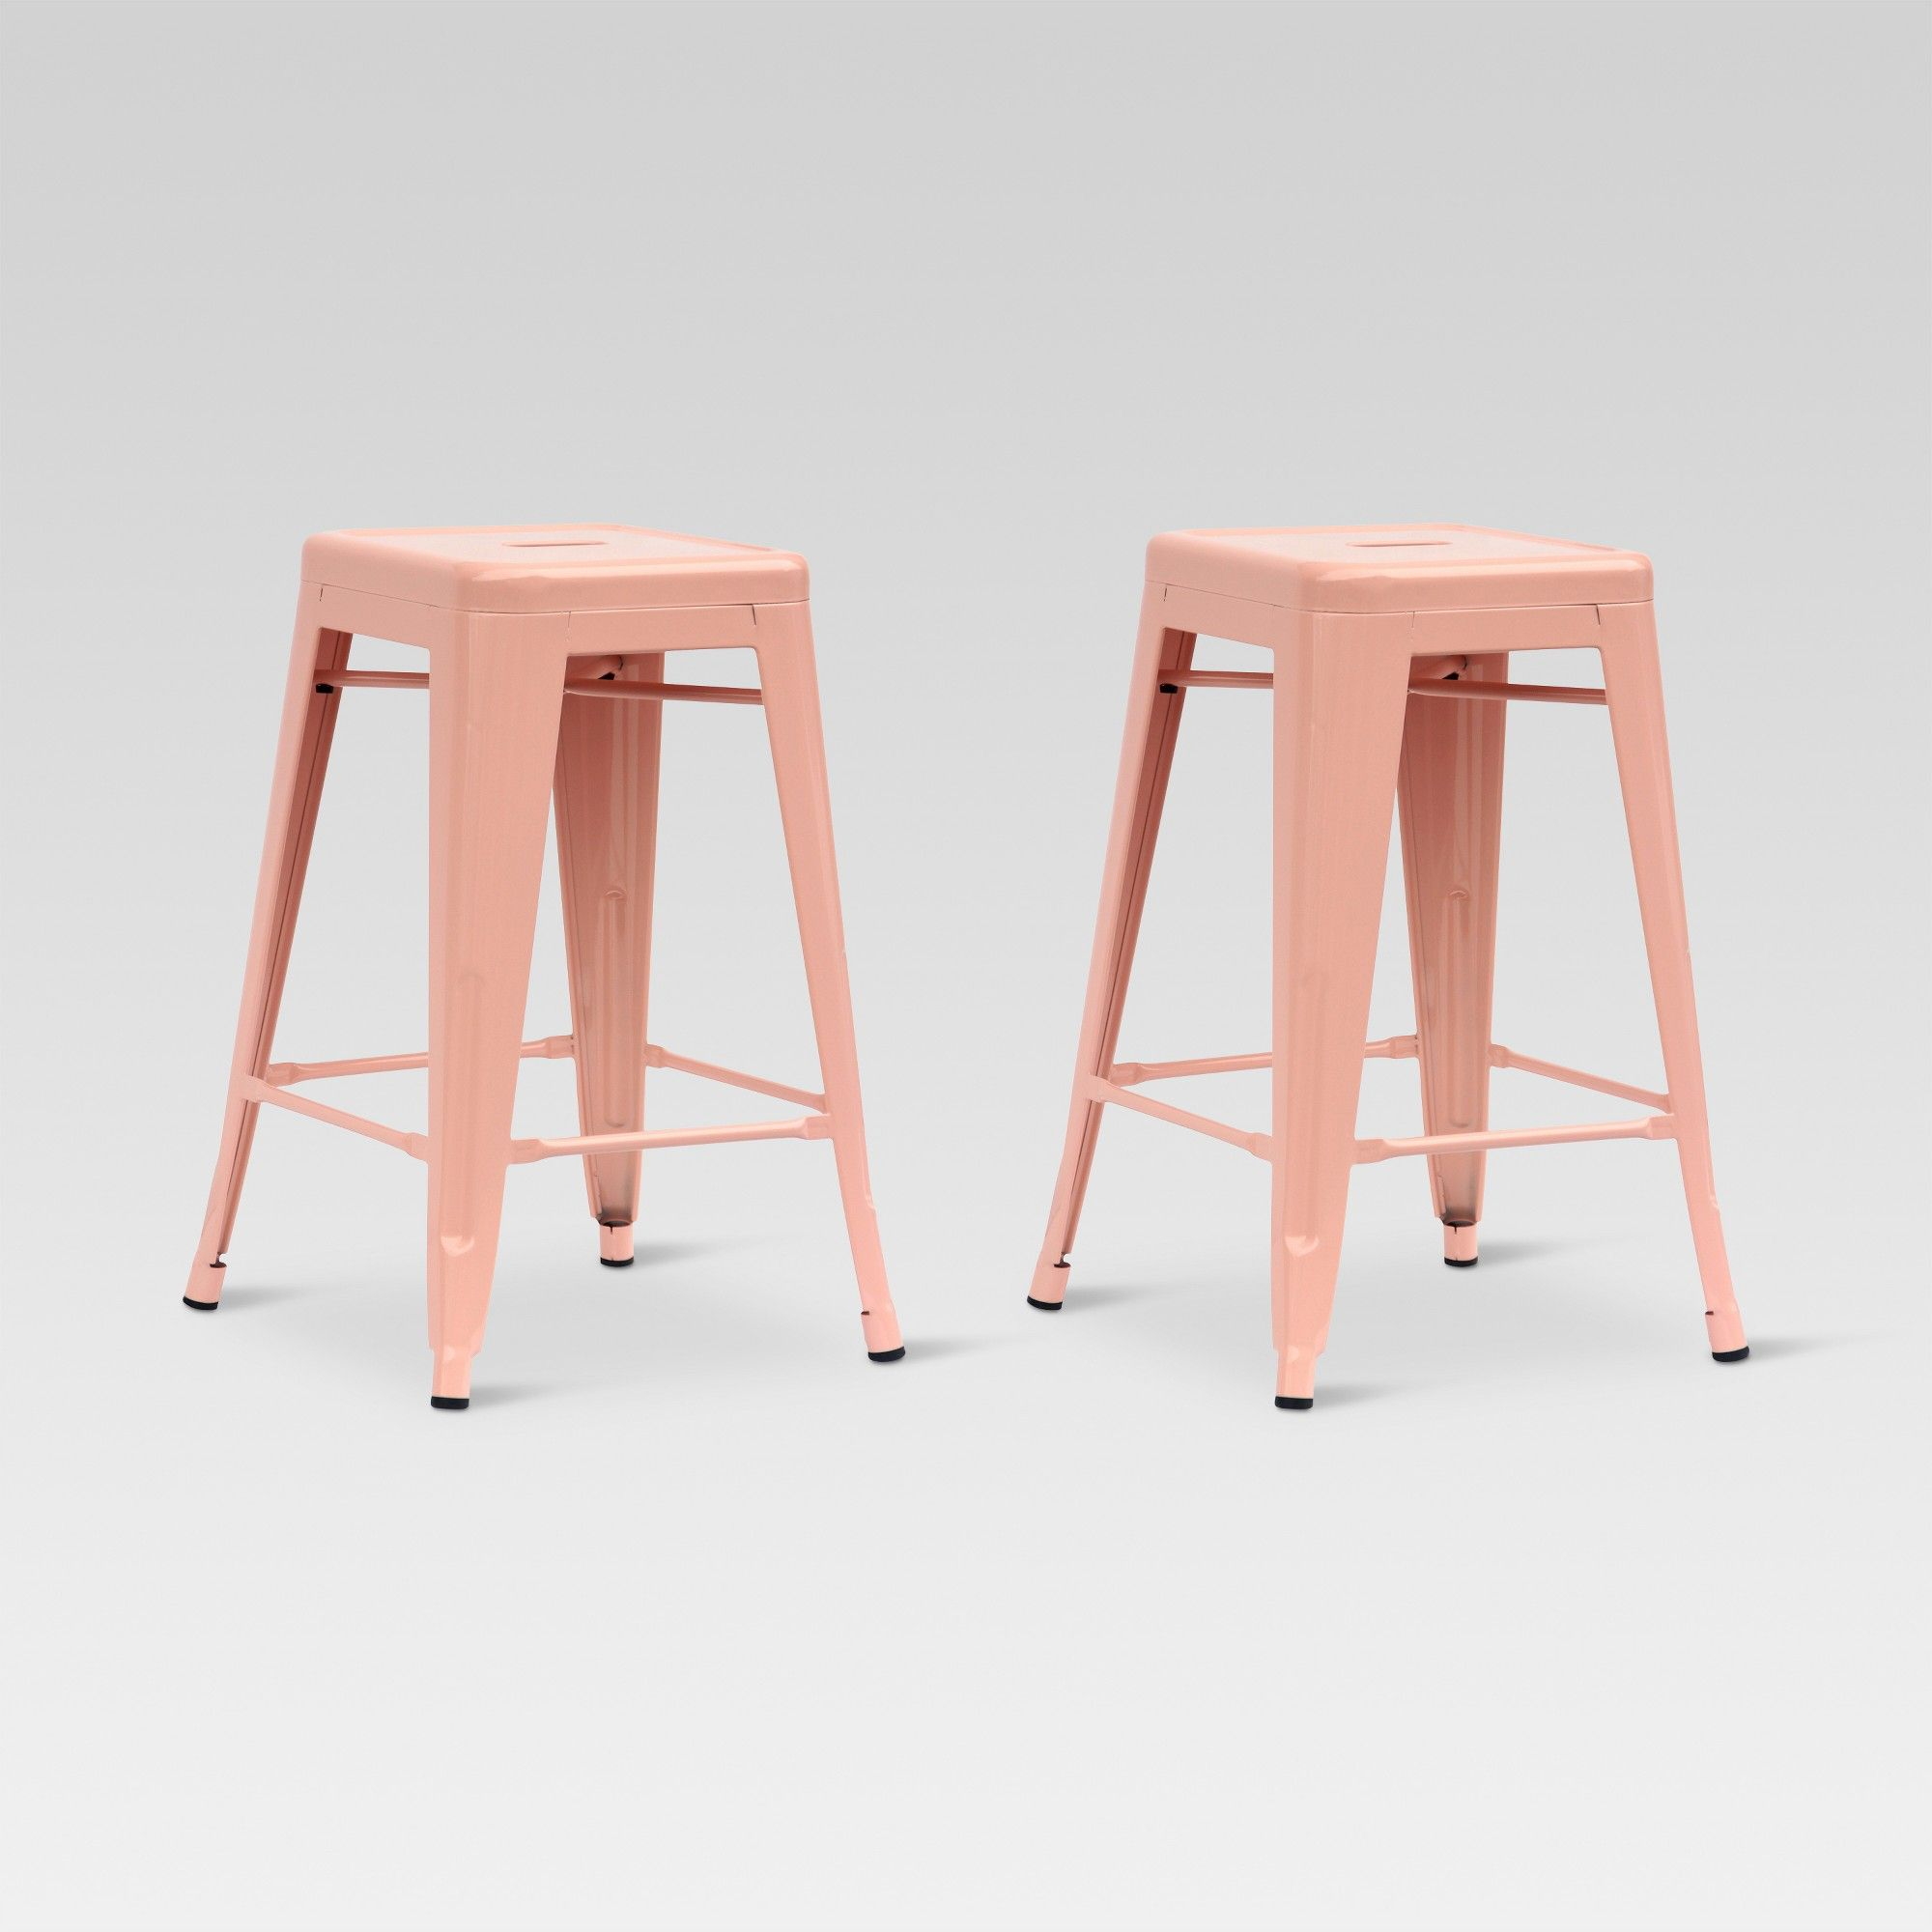 Admirable Carlisle 24 Metal Counter Stool Dusty Pink Set Of 2 Camellatalisay Diy Chair Ideas Camellatalisaycom